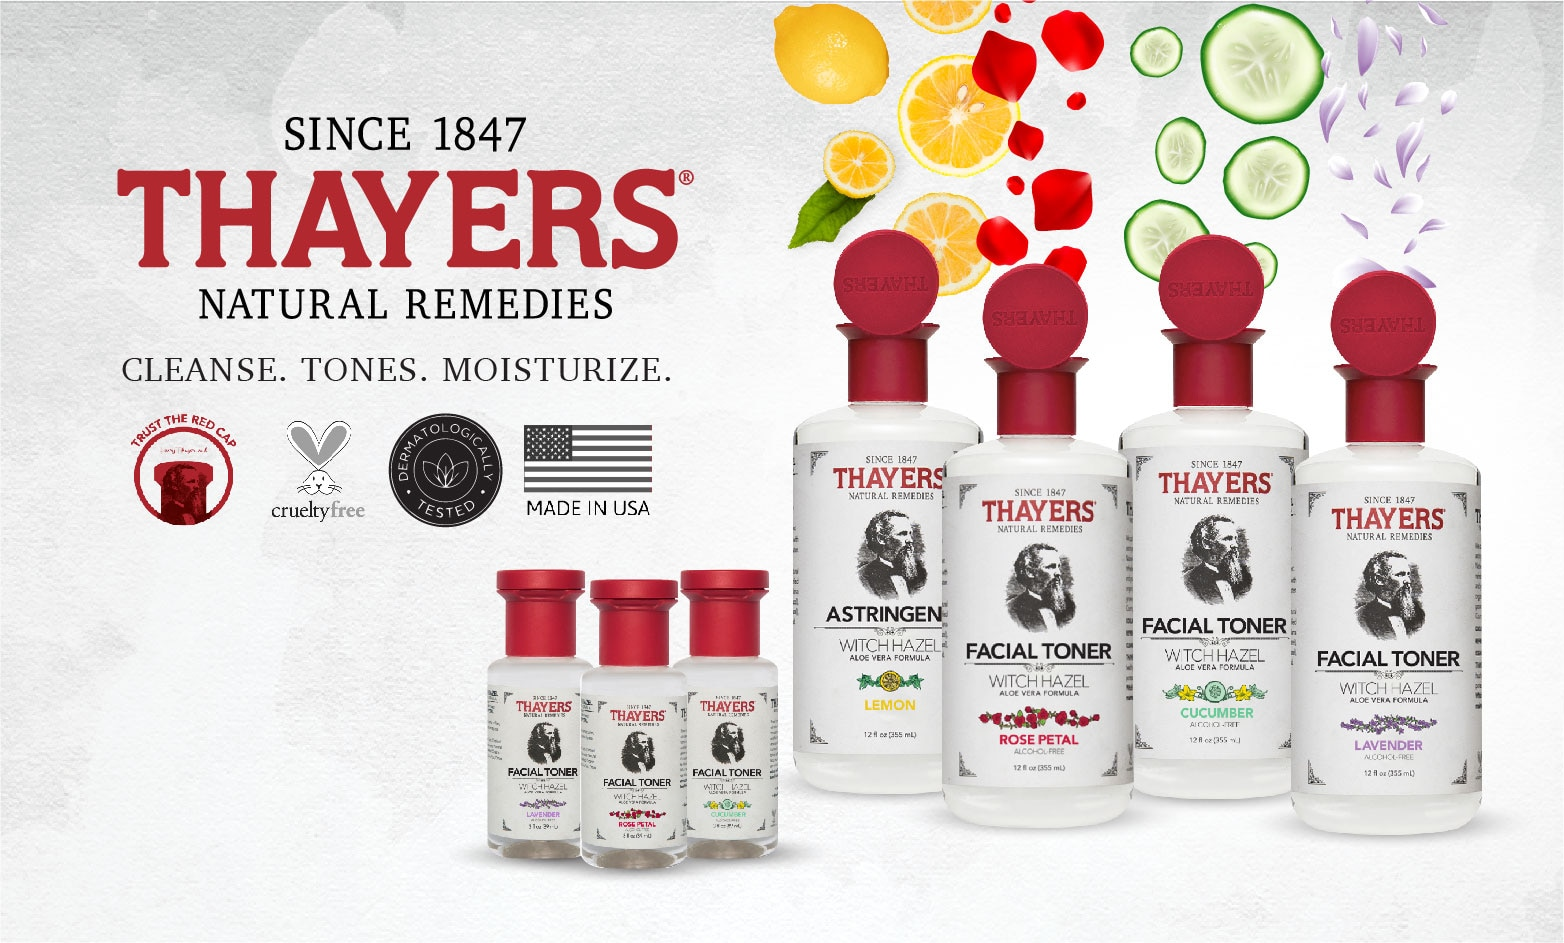 BANNER_WATSONS_THAYERS_2021-01-26_new_Mobile size BANNER 750x452.jpg